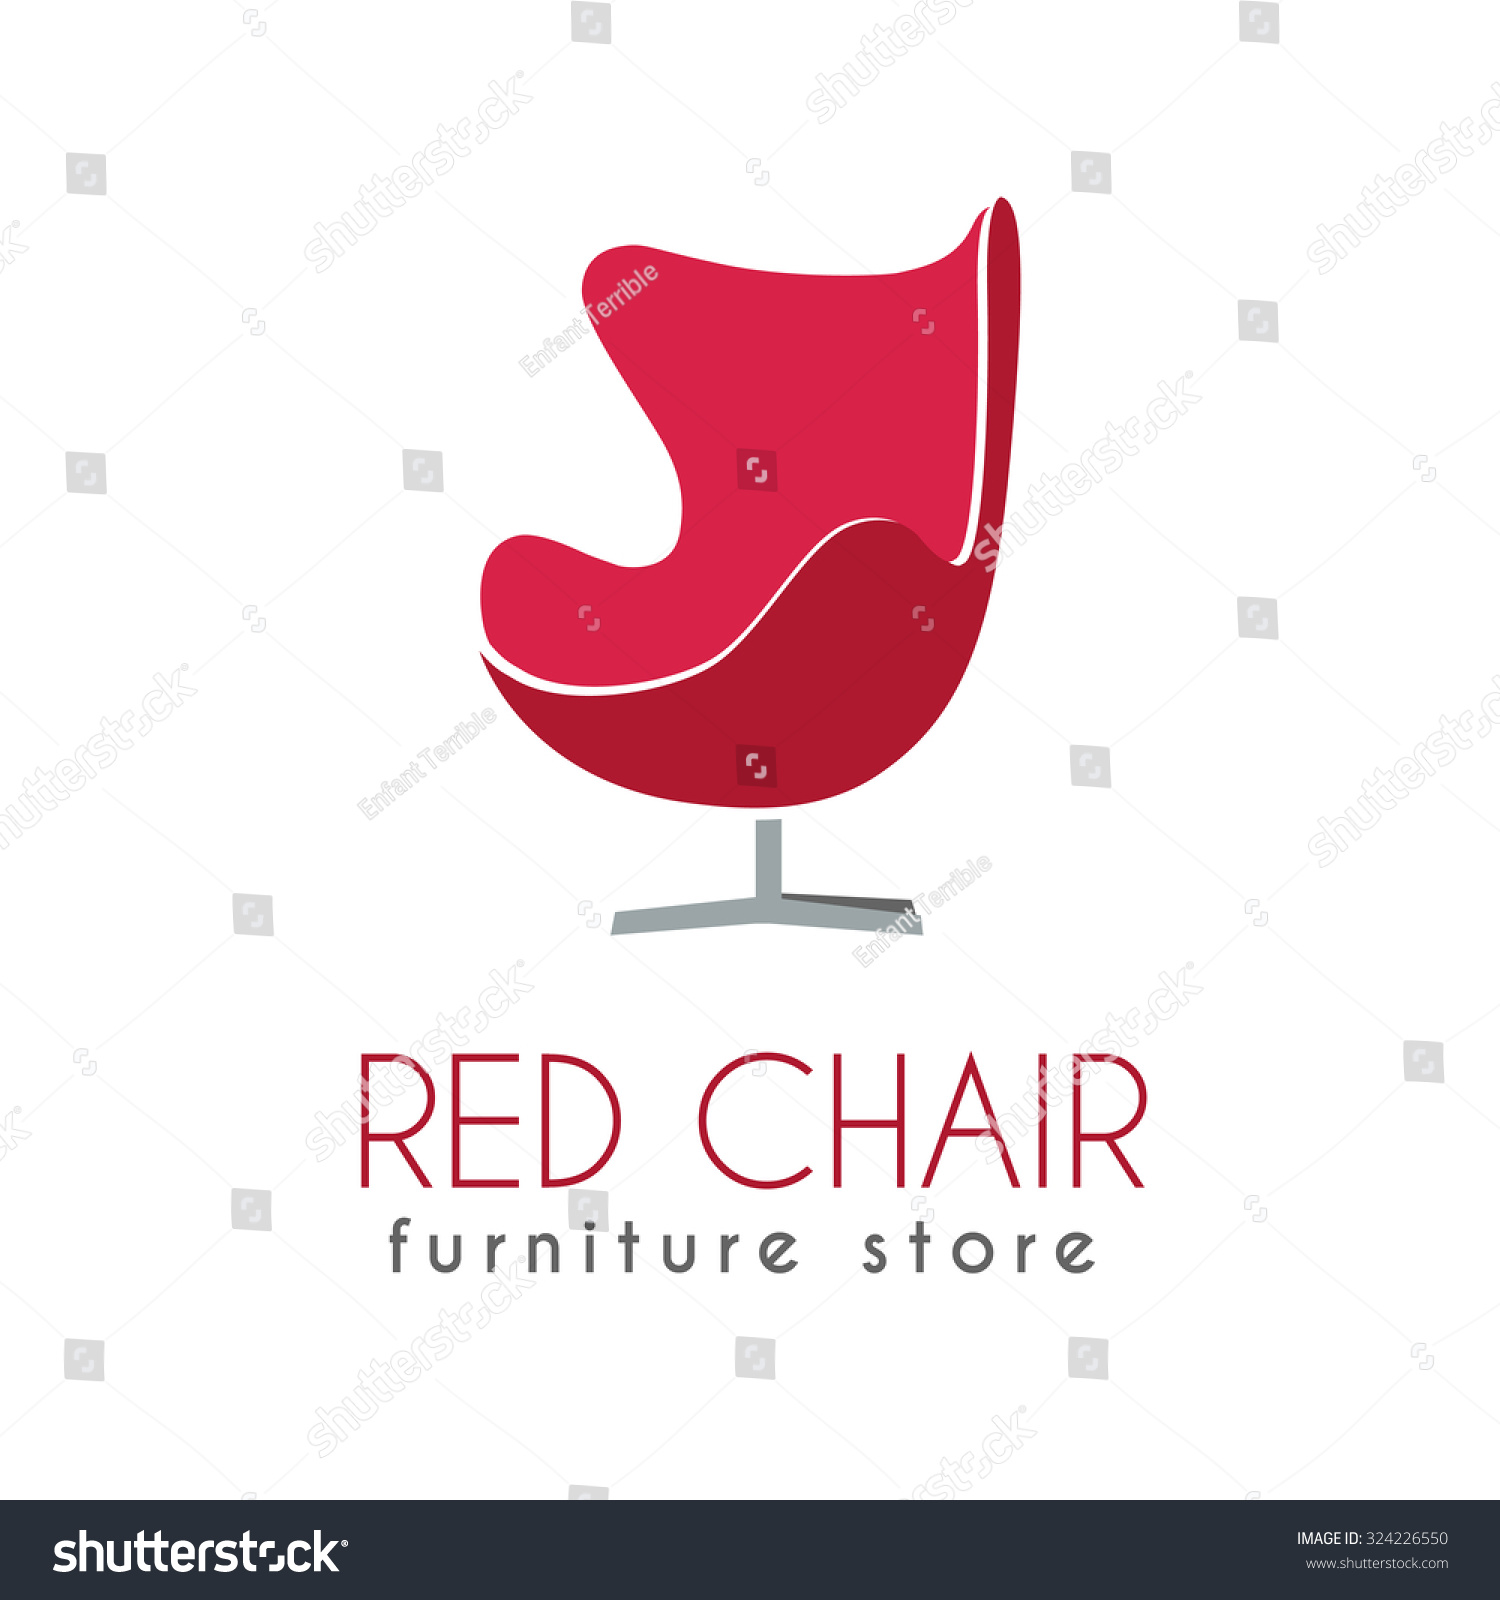 Red chair business sign vector template stock vector 324226550 red chair business sign vector template for furniture store home decor boutique furniture design wajeb Choice Image